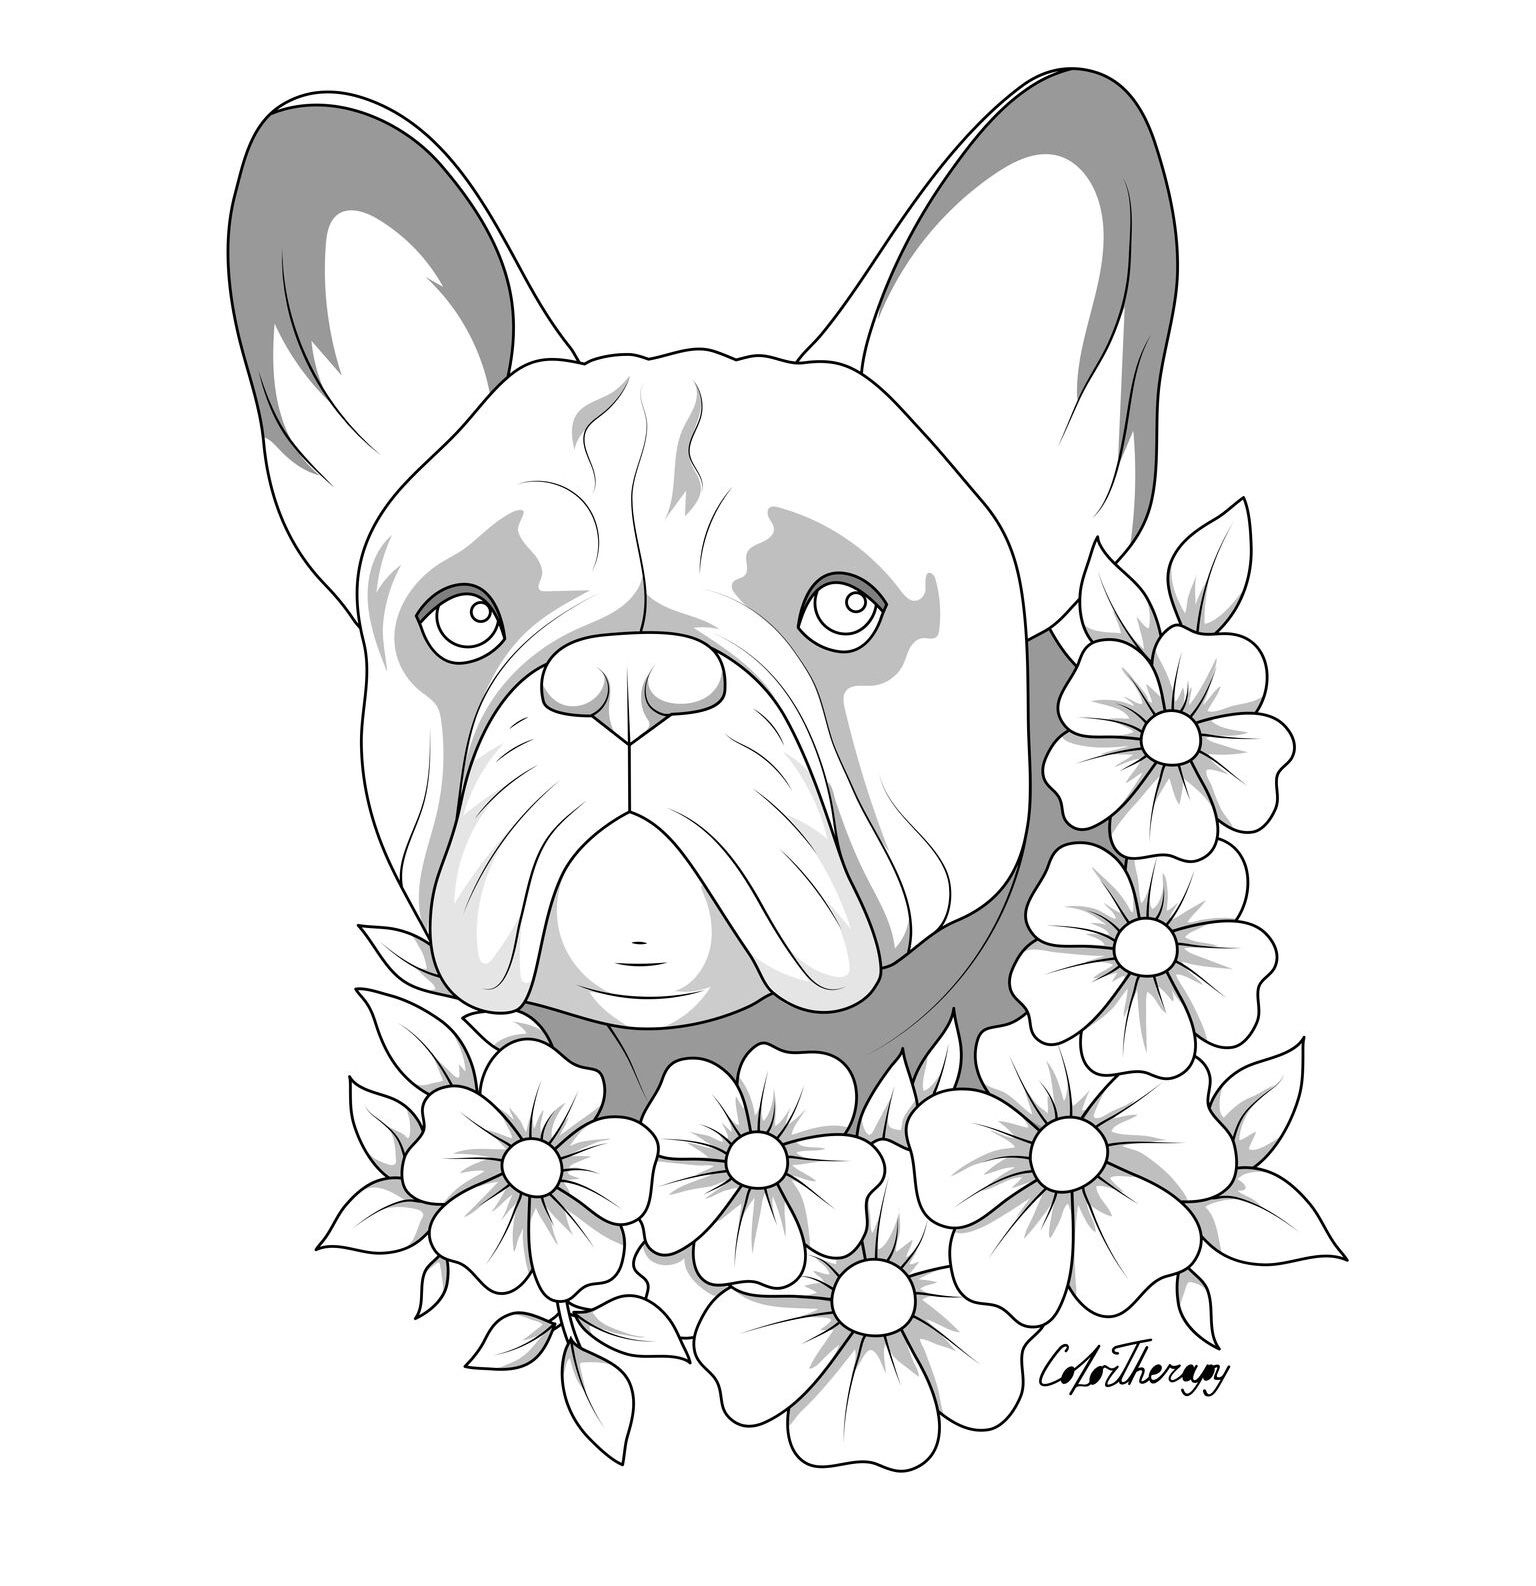 French Bulldog Colouring Page Dog Coloring Page Horse Coloring Pages Coloring Book Art